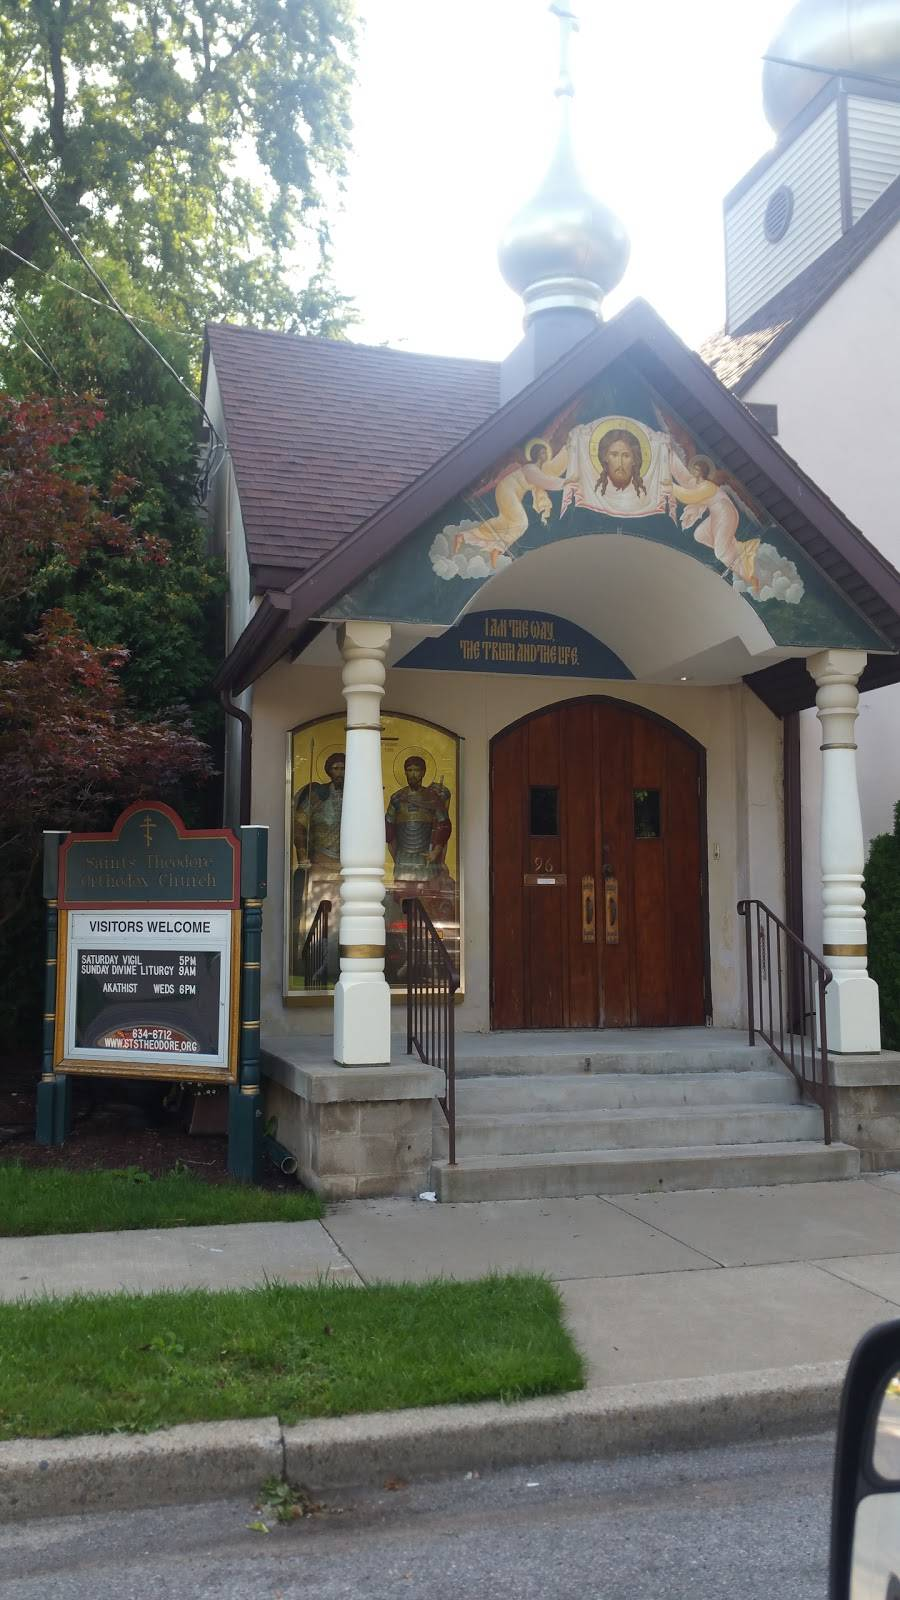 Sts Theodore Orthodox Church - church  | Photo 8 of 9 | Address: 96 Los Robles St, Williamsville, NY 14221, USA | Phone: (716) 634-6712